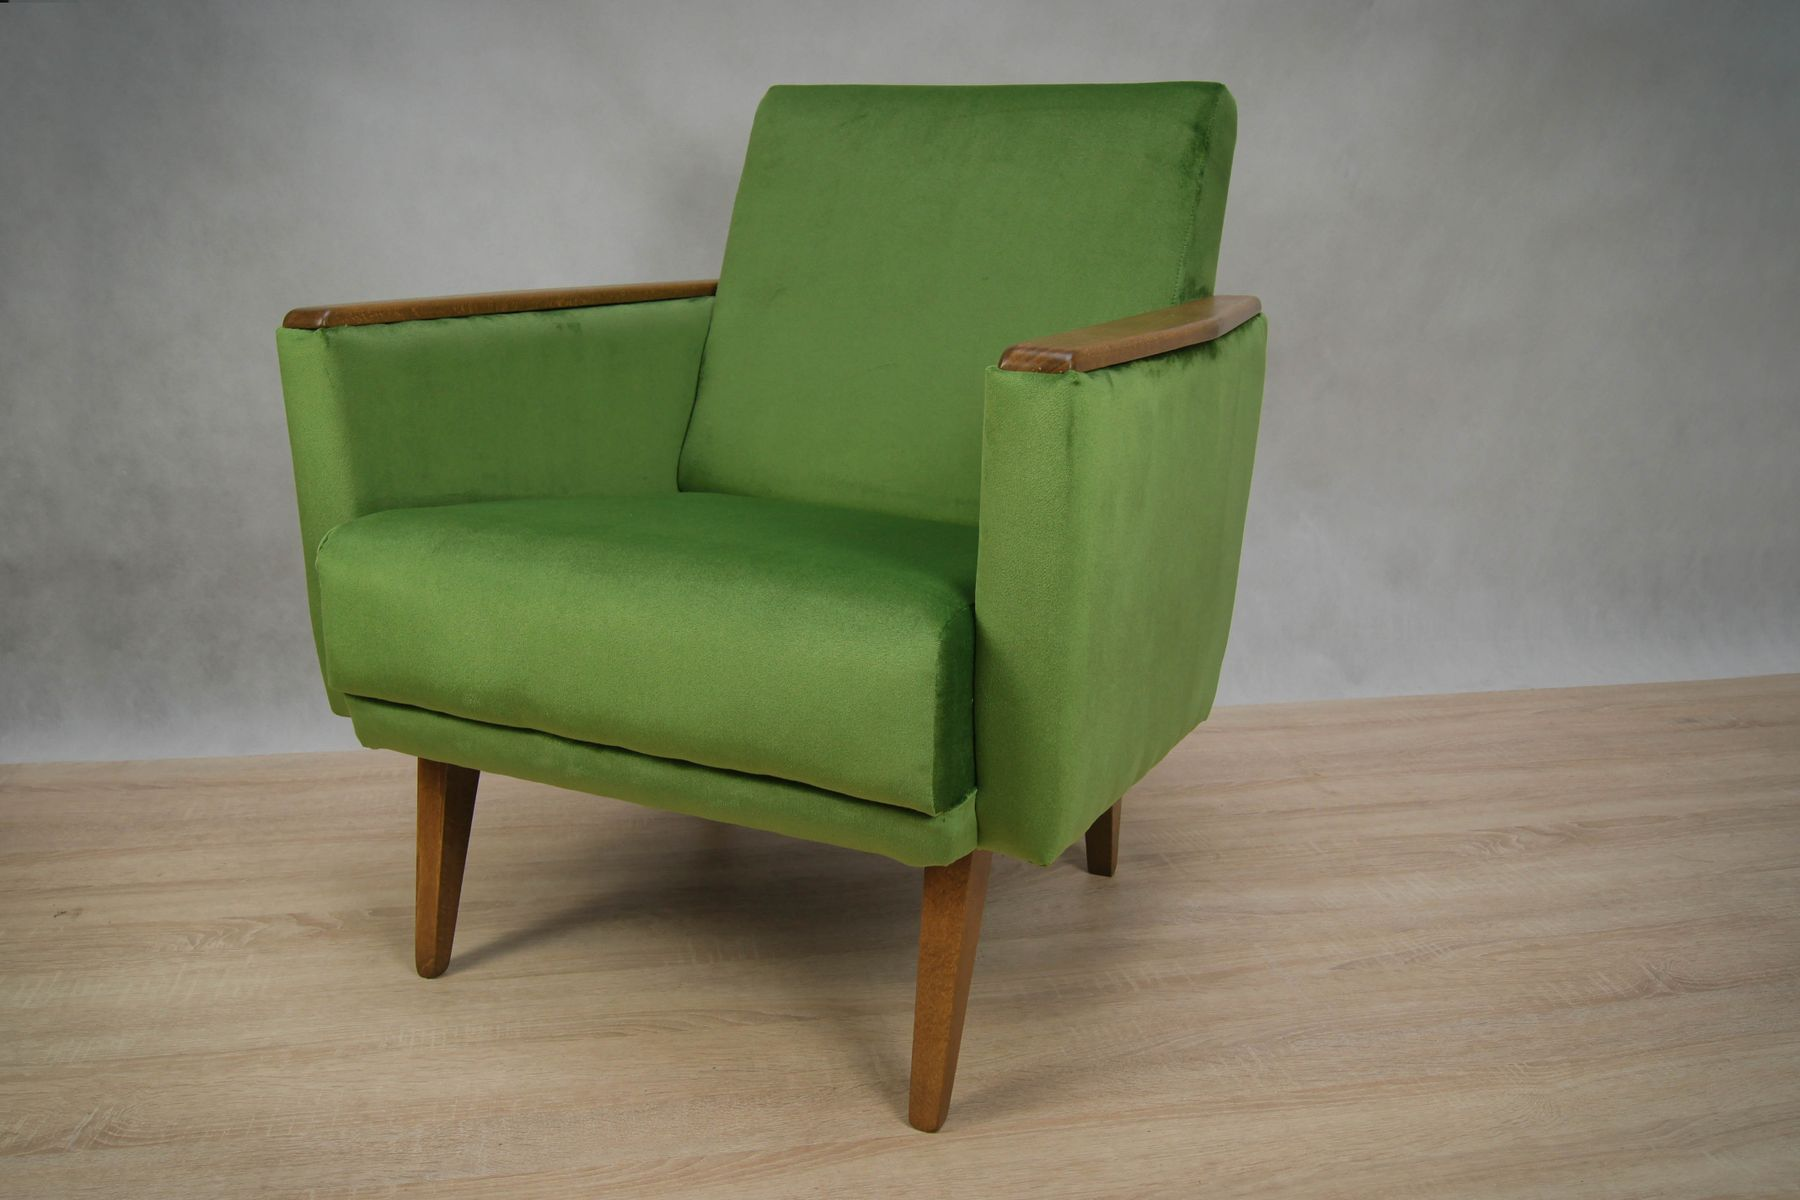 german green armchairs 1960s set of 2 for sale at pamono